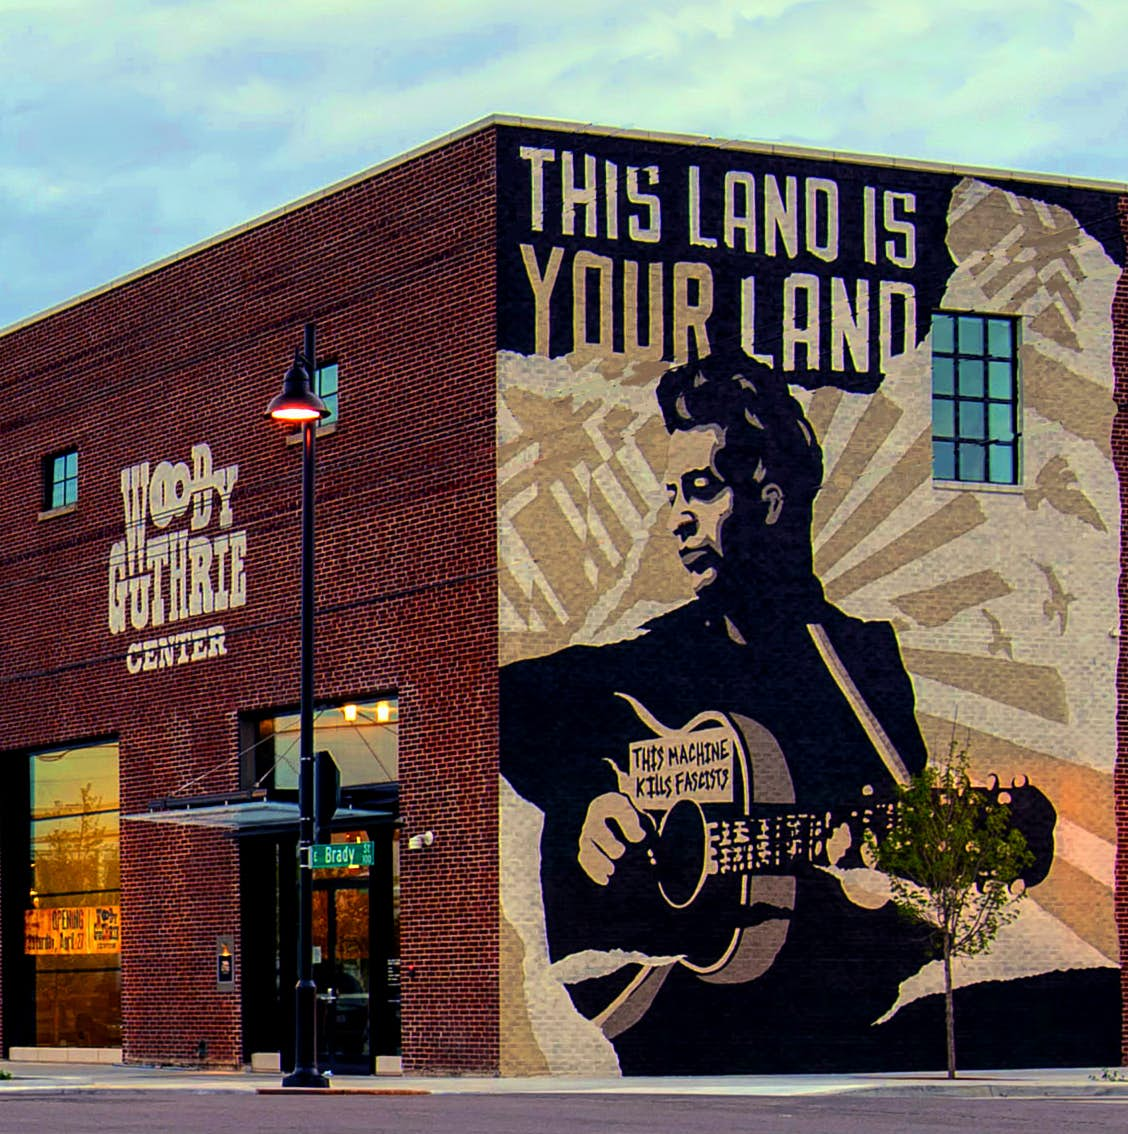 A large mural depicts Woody Guthrie and the phrase 'This land is your land' on the side of the center. USA museums for music lovers